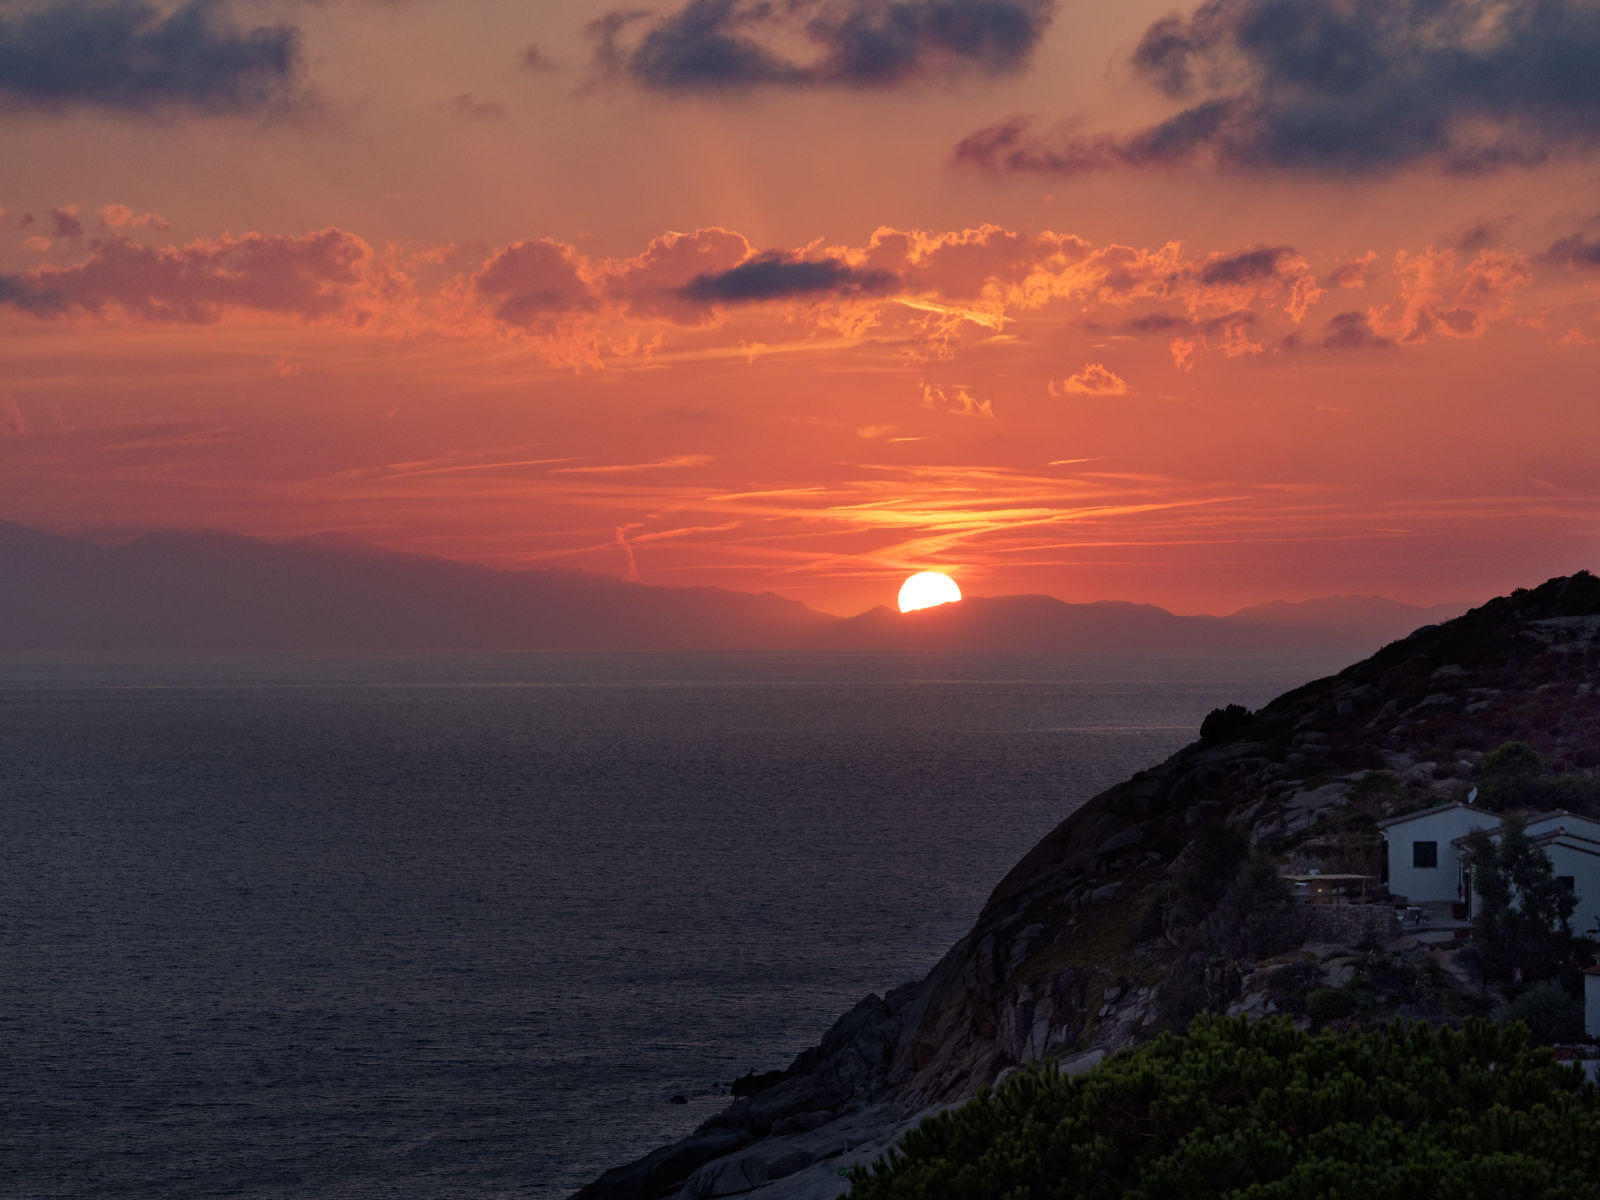 Sunset over Chiessi...